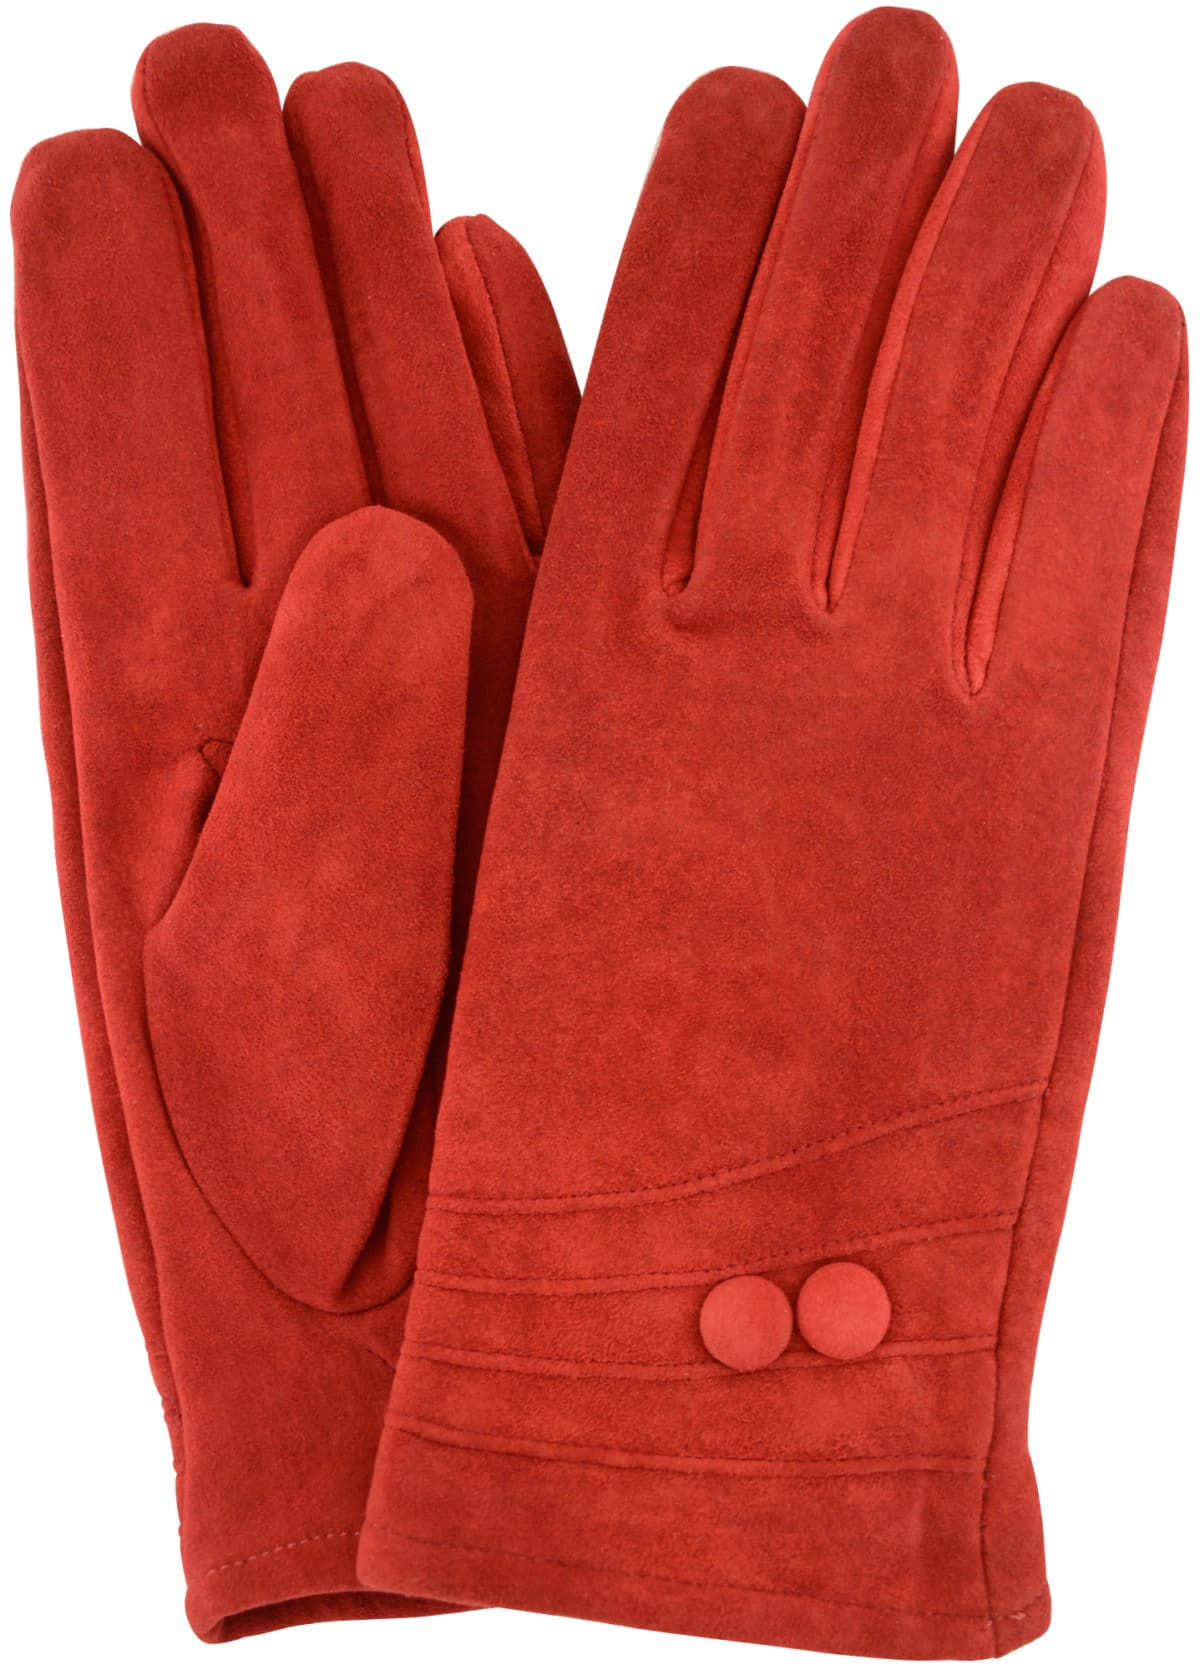 Suede Gloves Fleece Lining and Button Design - Red